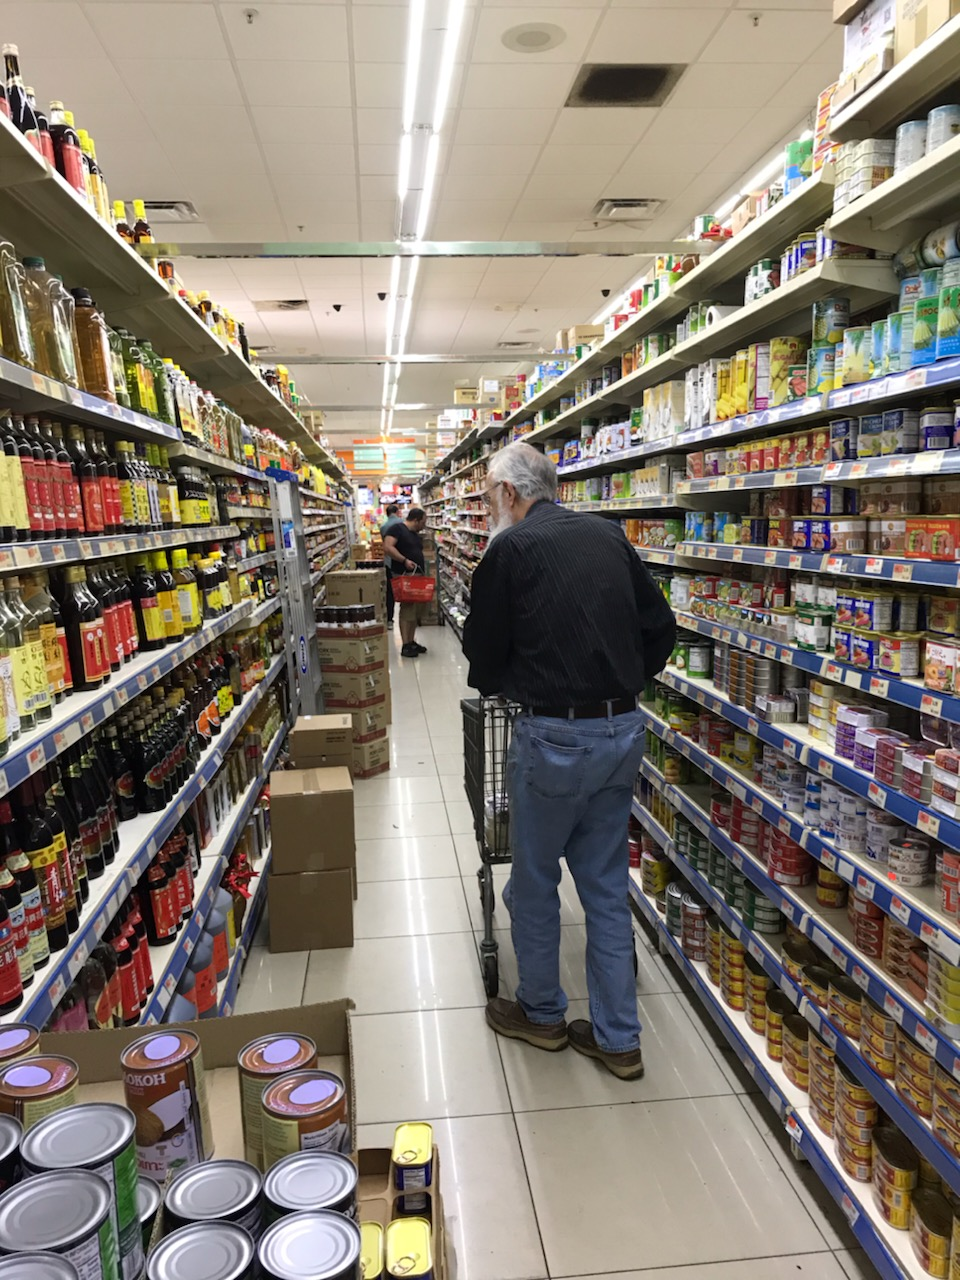 A shopper navigating one of 8 massive aisles.